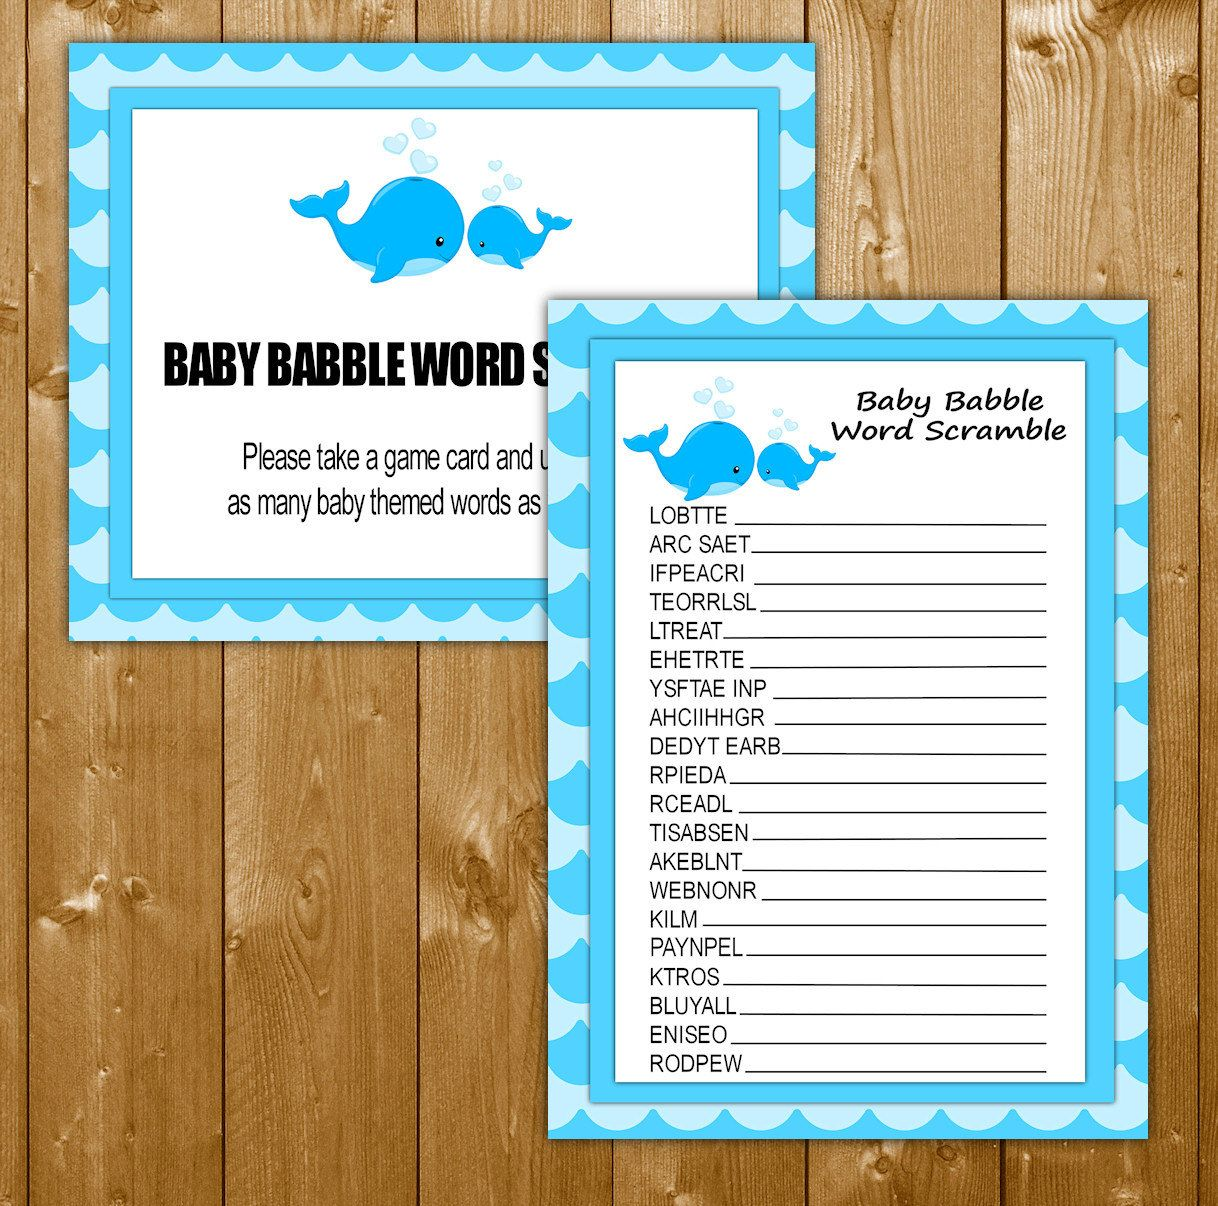 Word Scramble Baby Shower Games Whale Blue Shower Games In Blue Baby Babble Game Printable